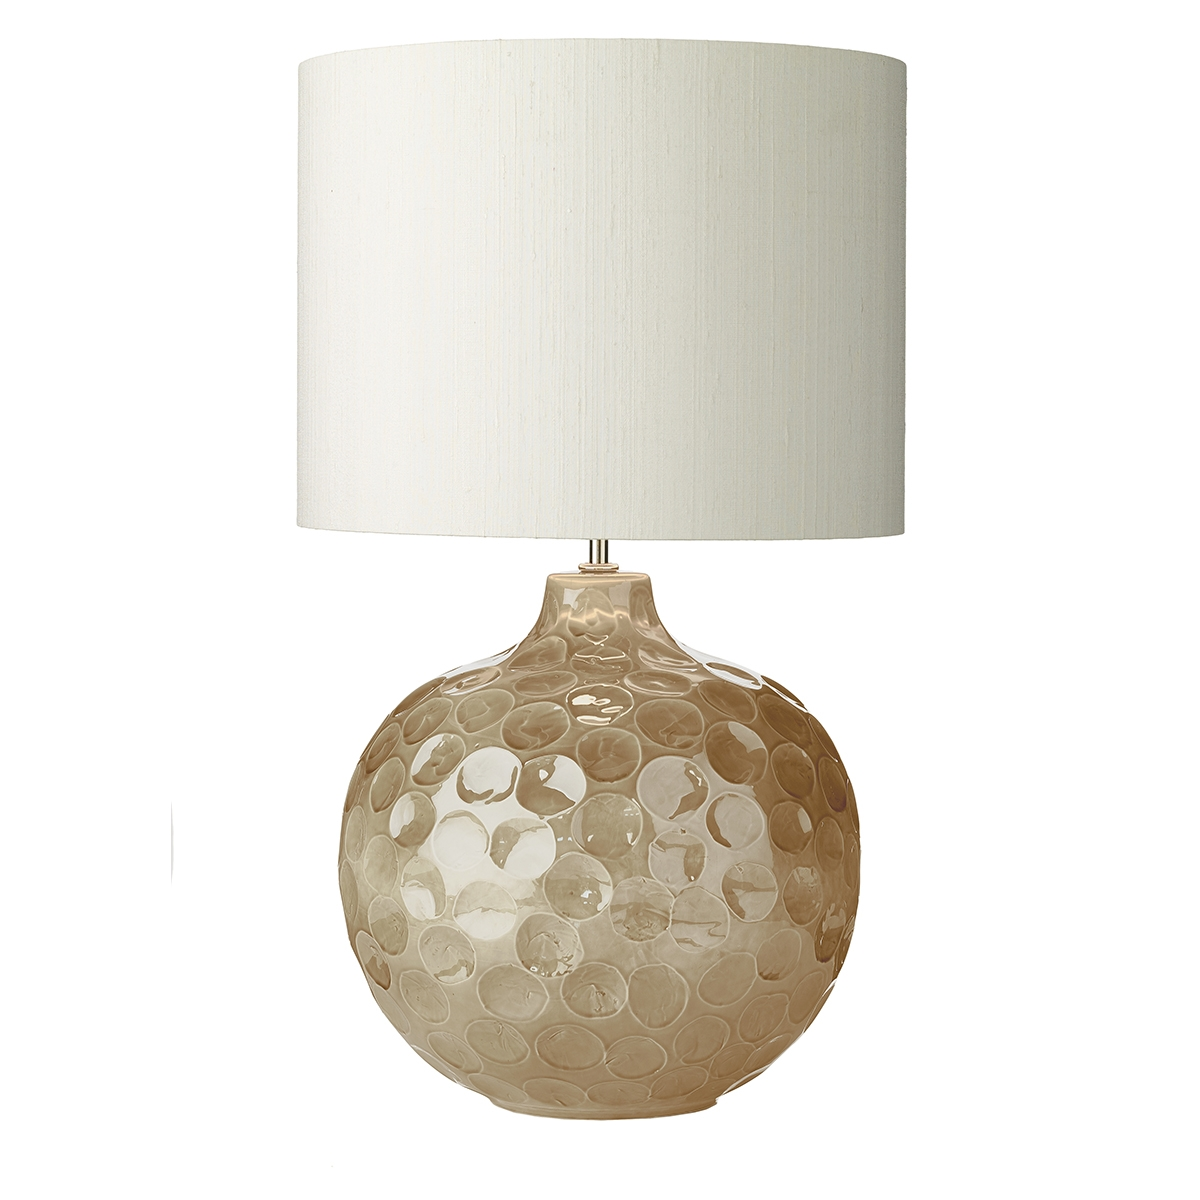 Odyssey Biscuit Ceramic Table Lamp